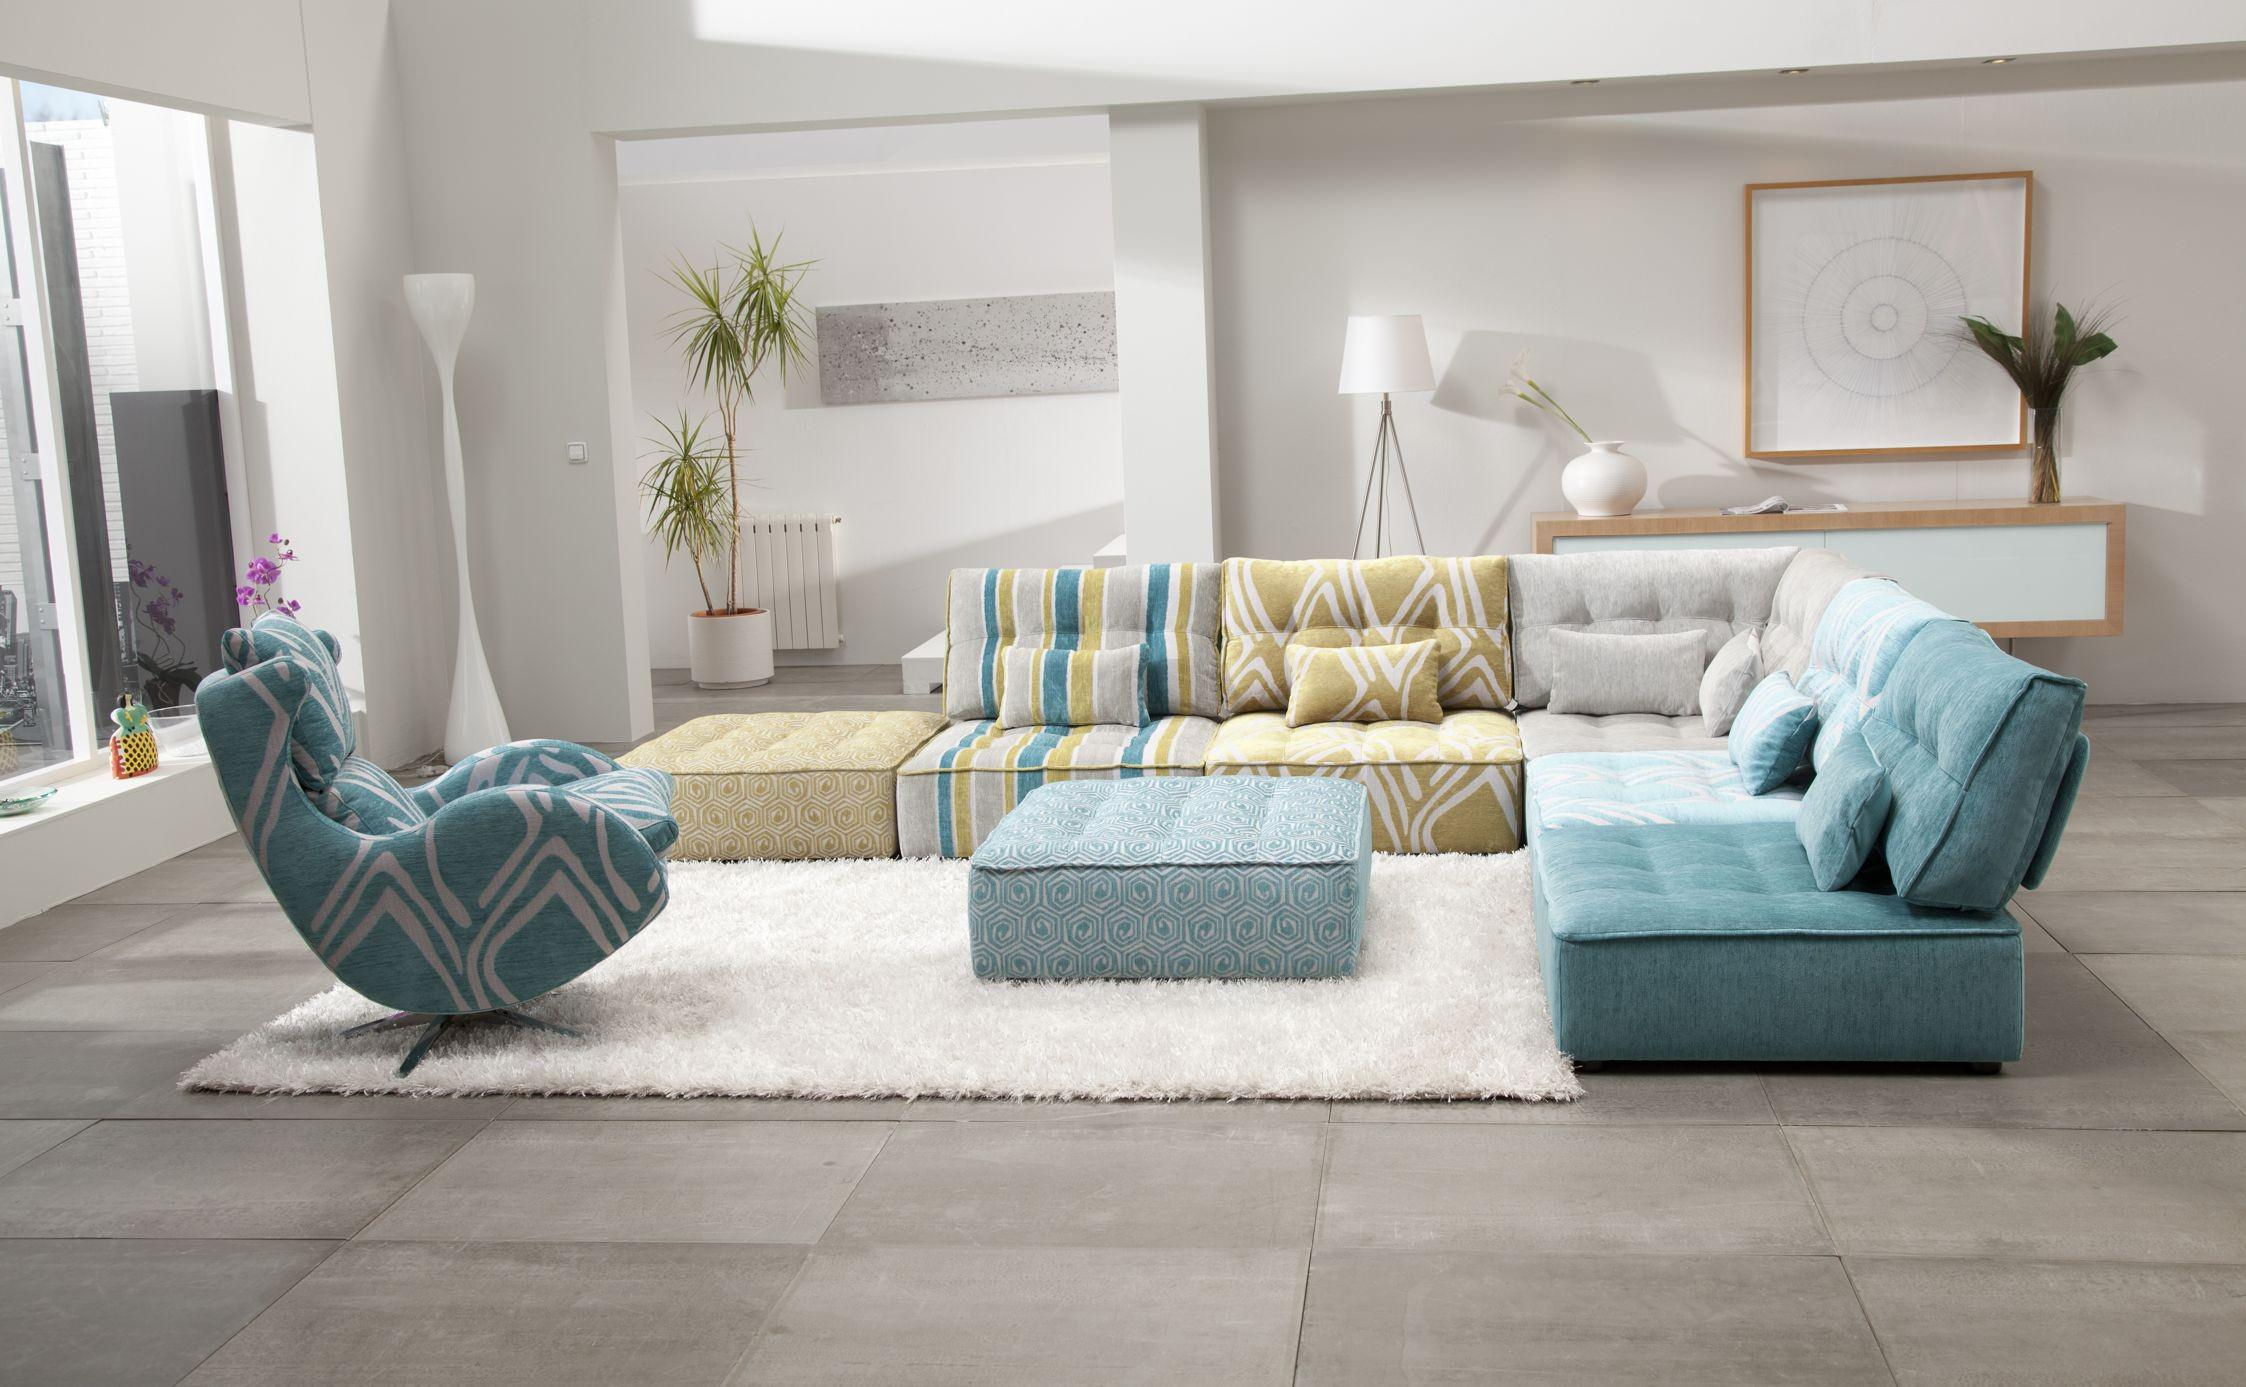 20+ Modular Sectional Sofas Designs, Ideas, Plans, Model ...